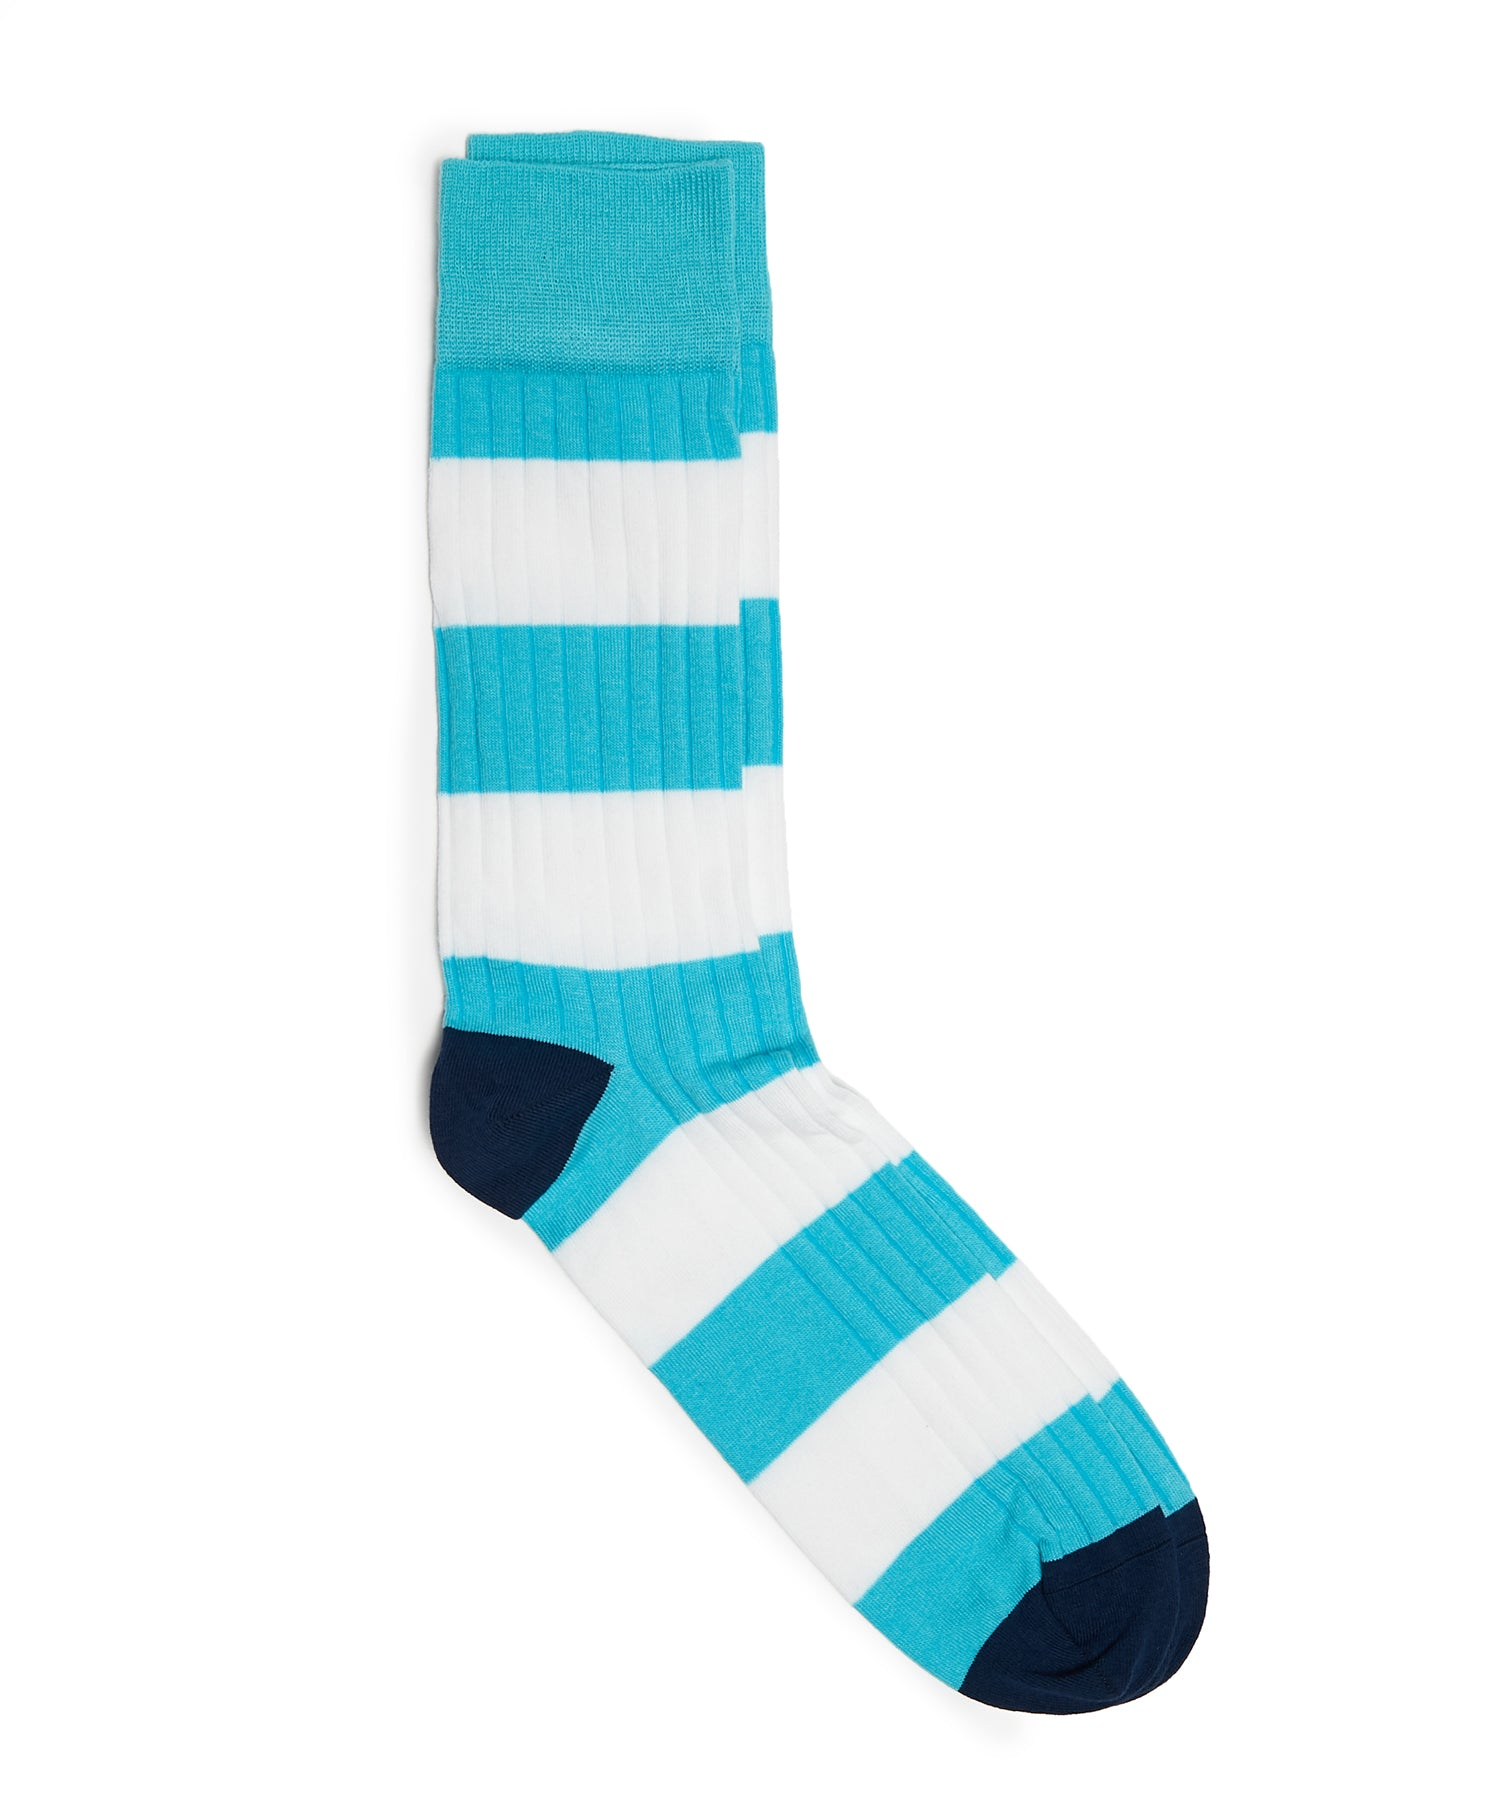 Corgi Rugby Cotton Sock in Turquoise